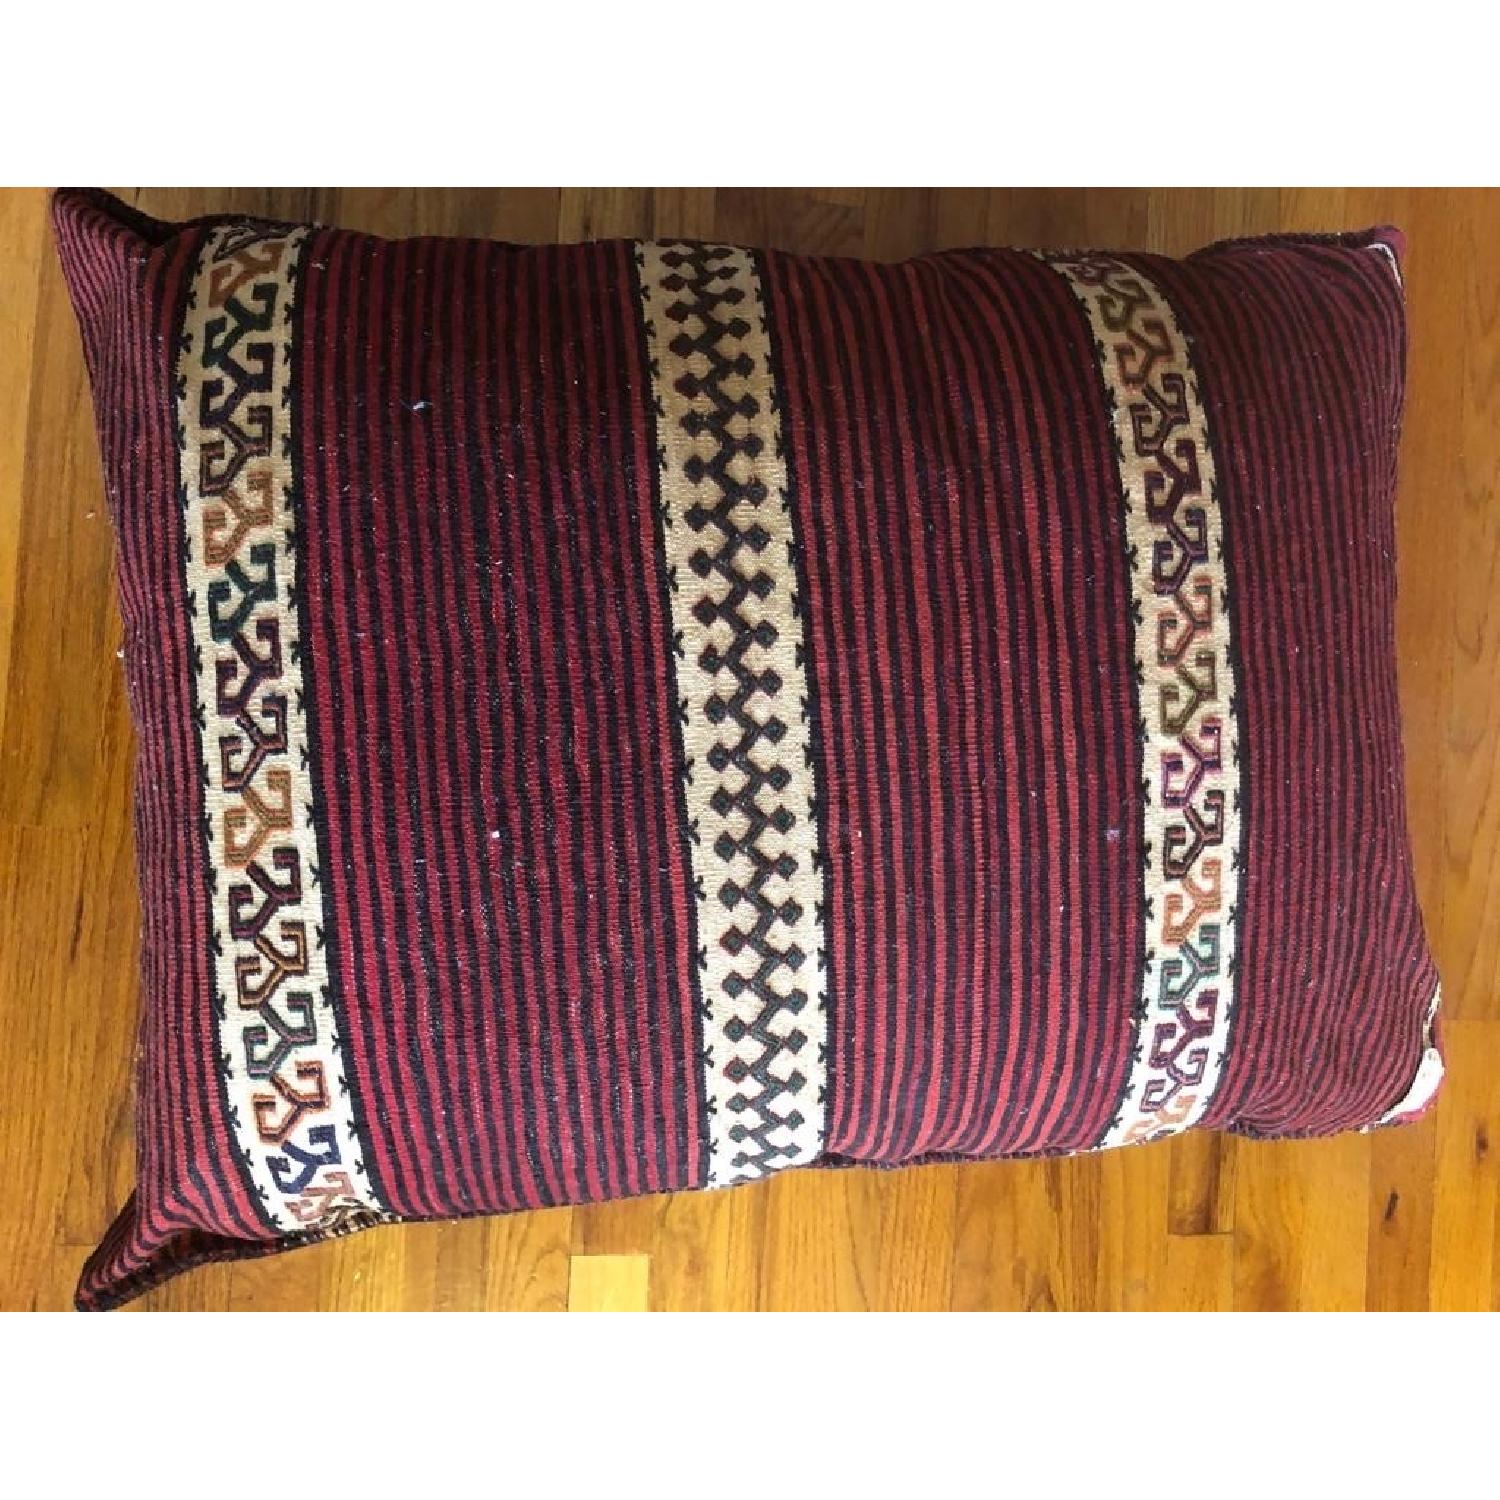 Persian Kilim Floor Pillows-5